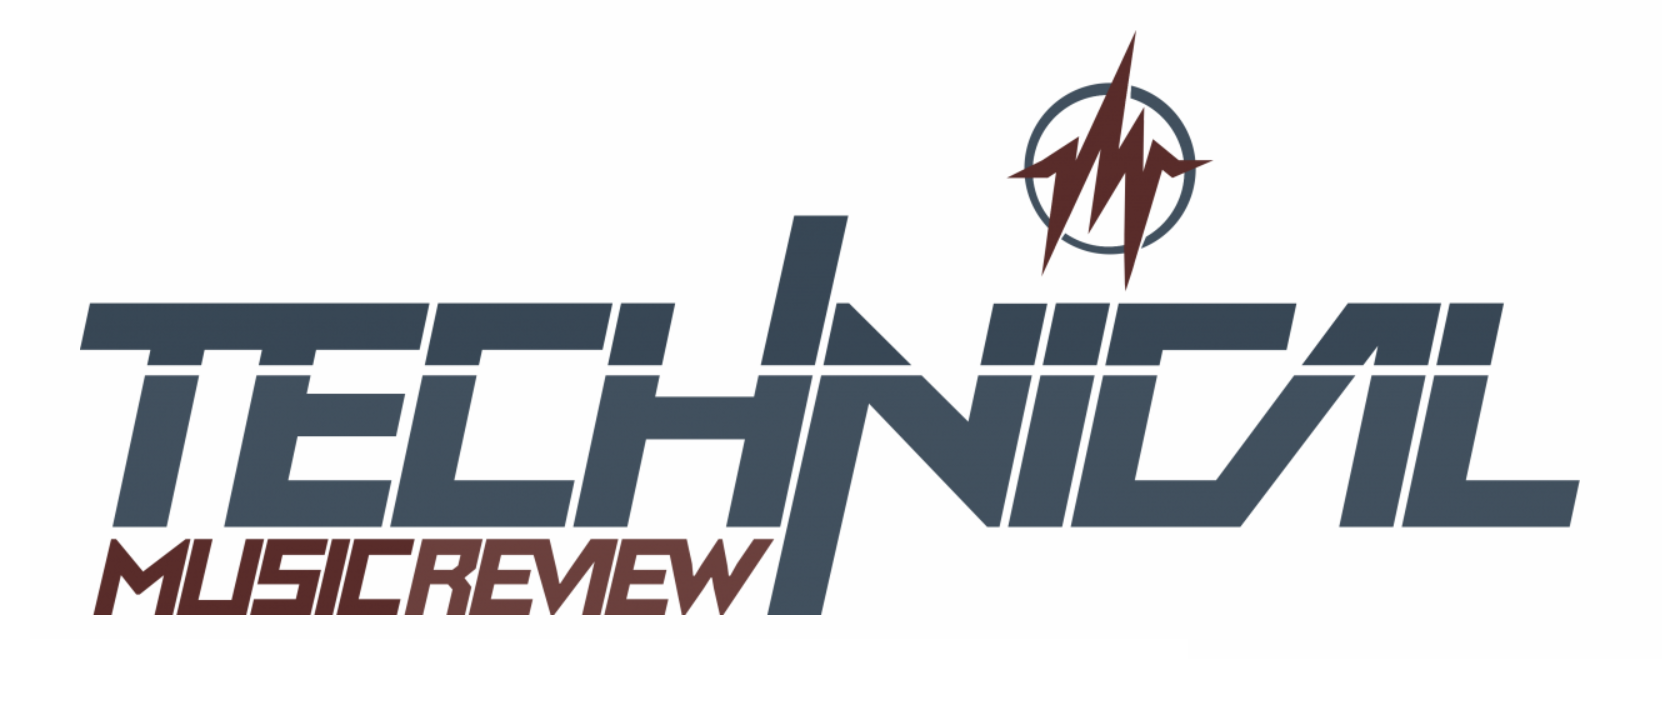 Technical Music Review